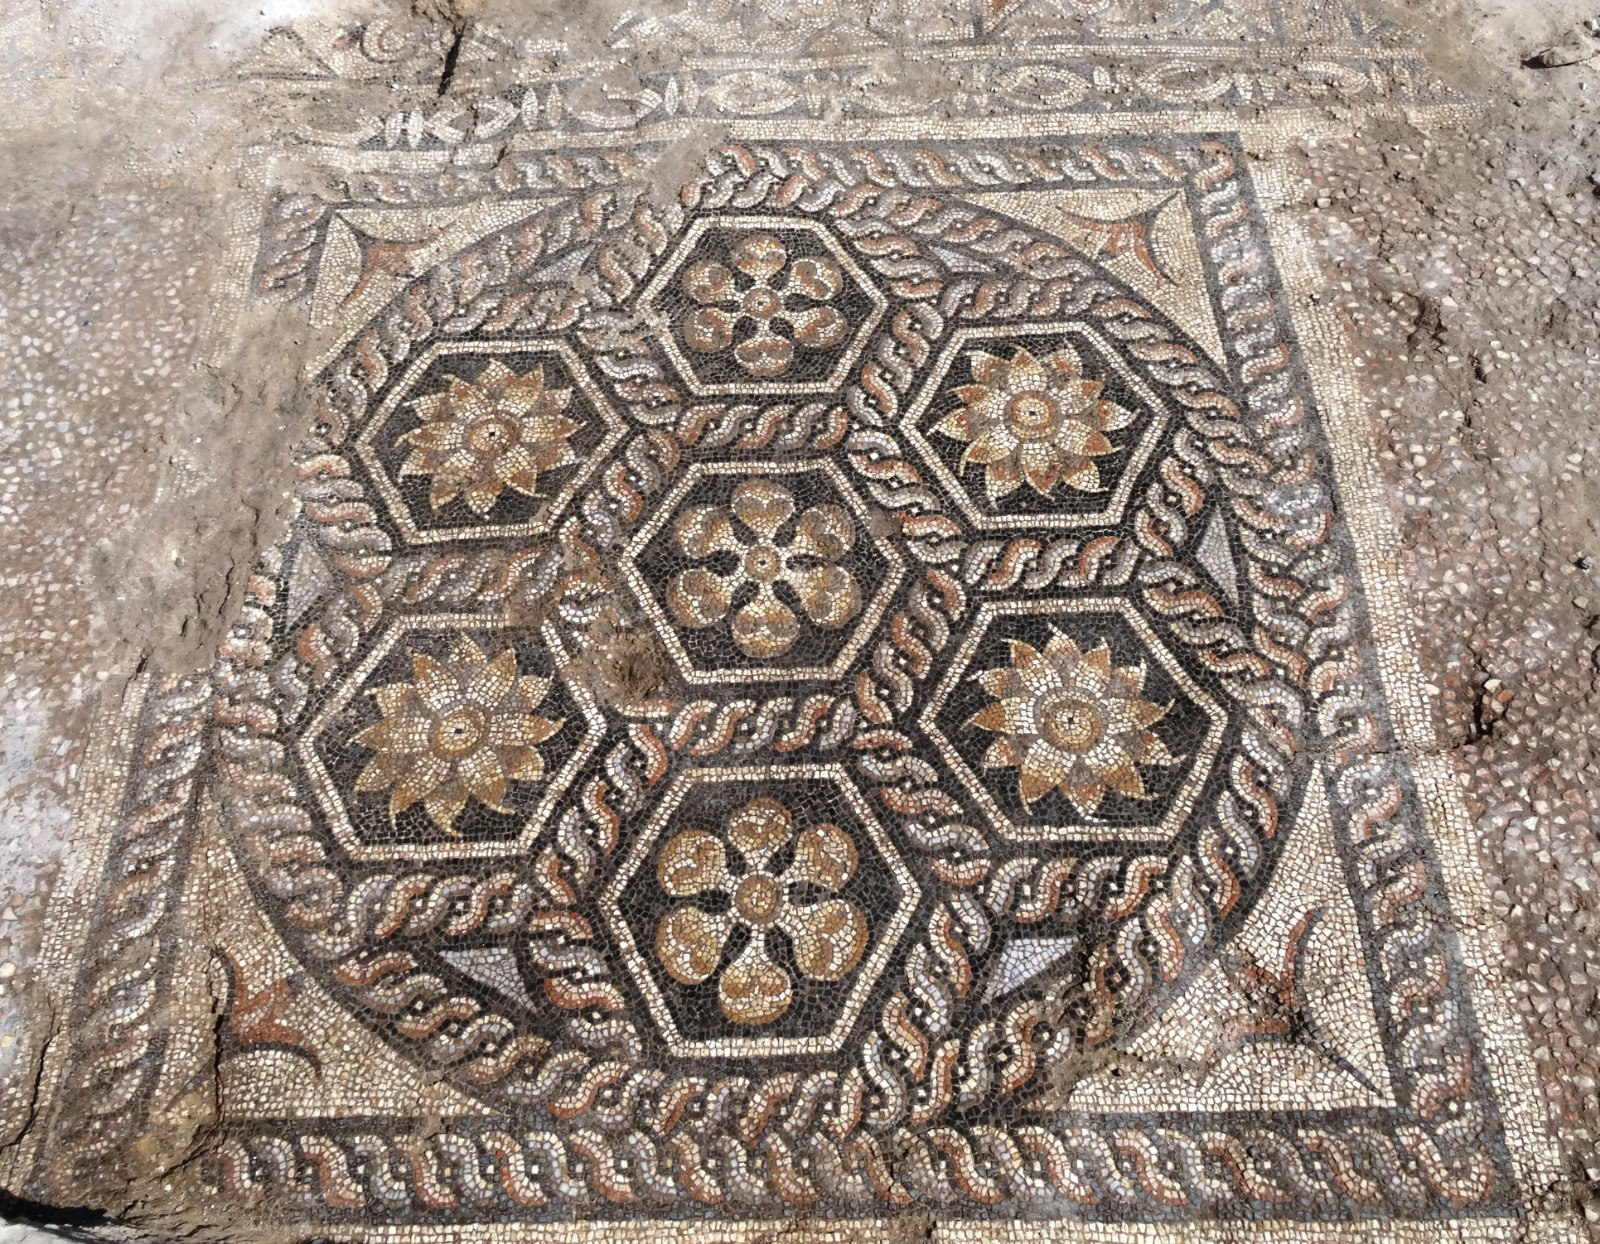 Well-Preserved Mosaic Floor Found in Roman Egypt - Archaeology Magazine